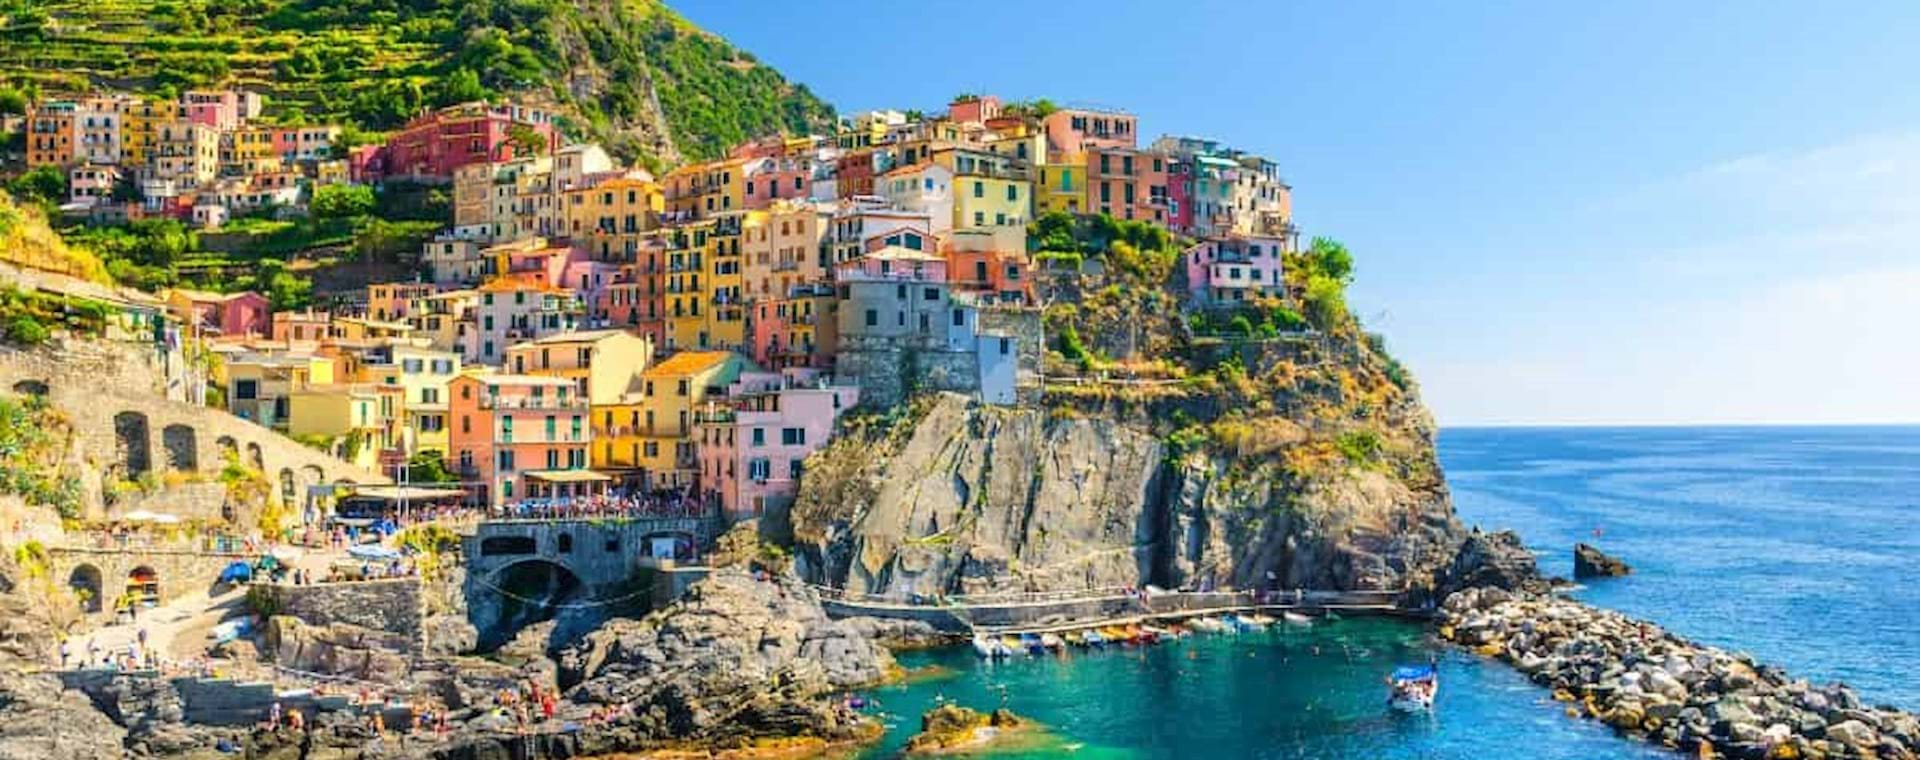 Amazing view of Manarola